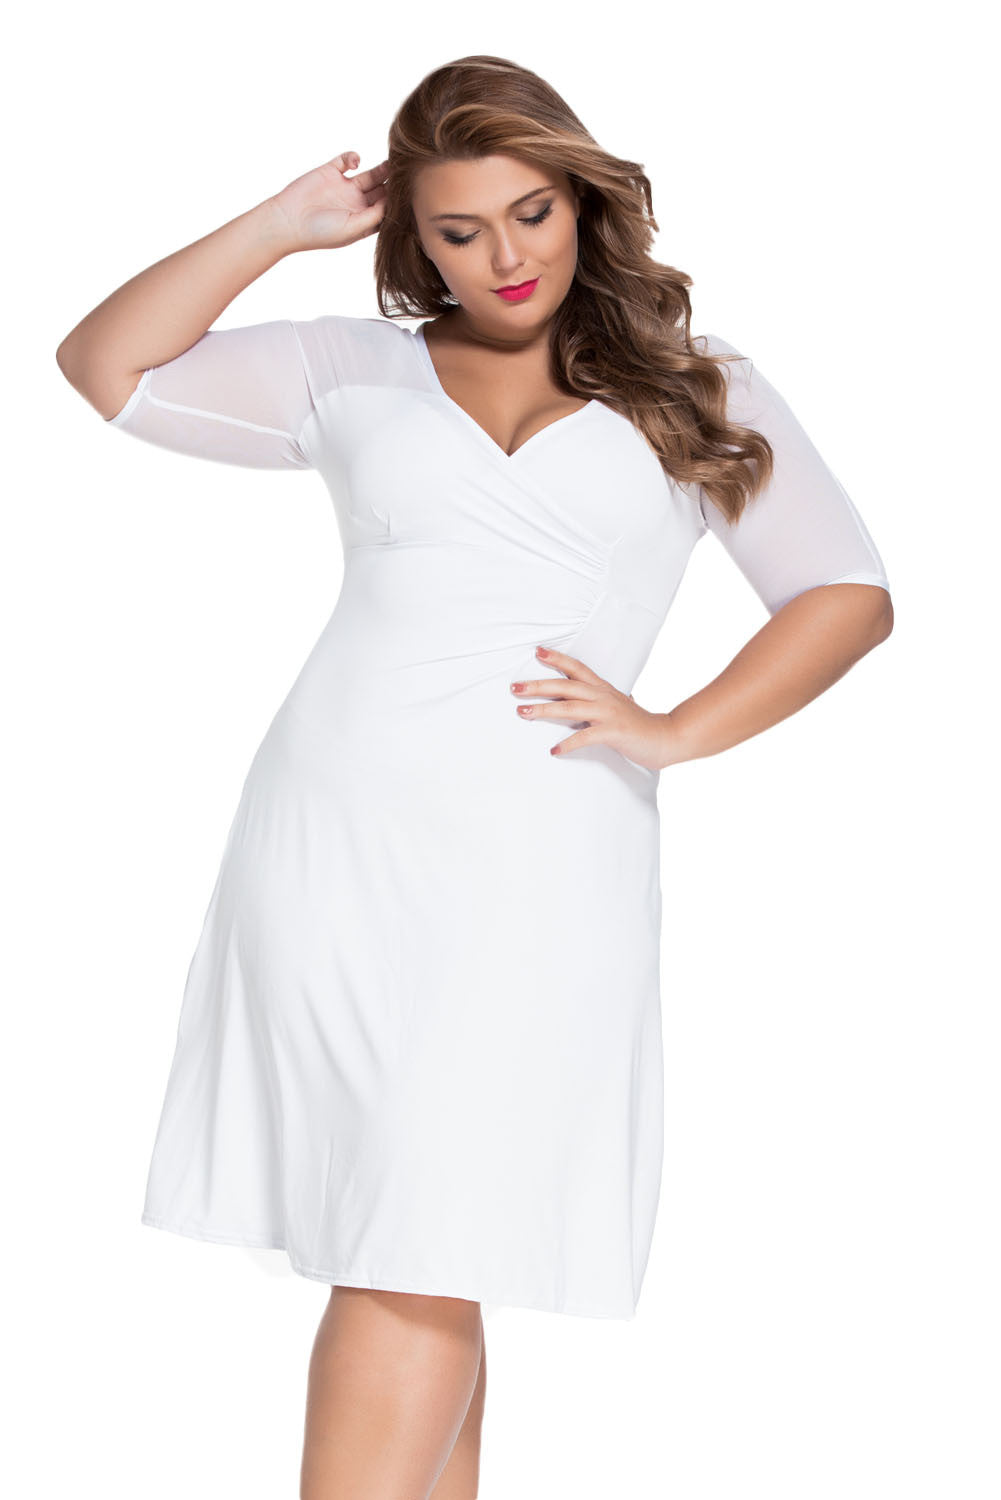 White Plus Size Sugar and Spice Dress - Jahnell's Closet